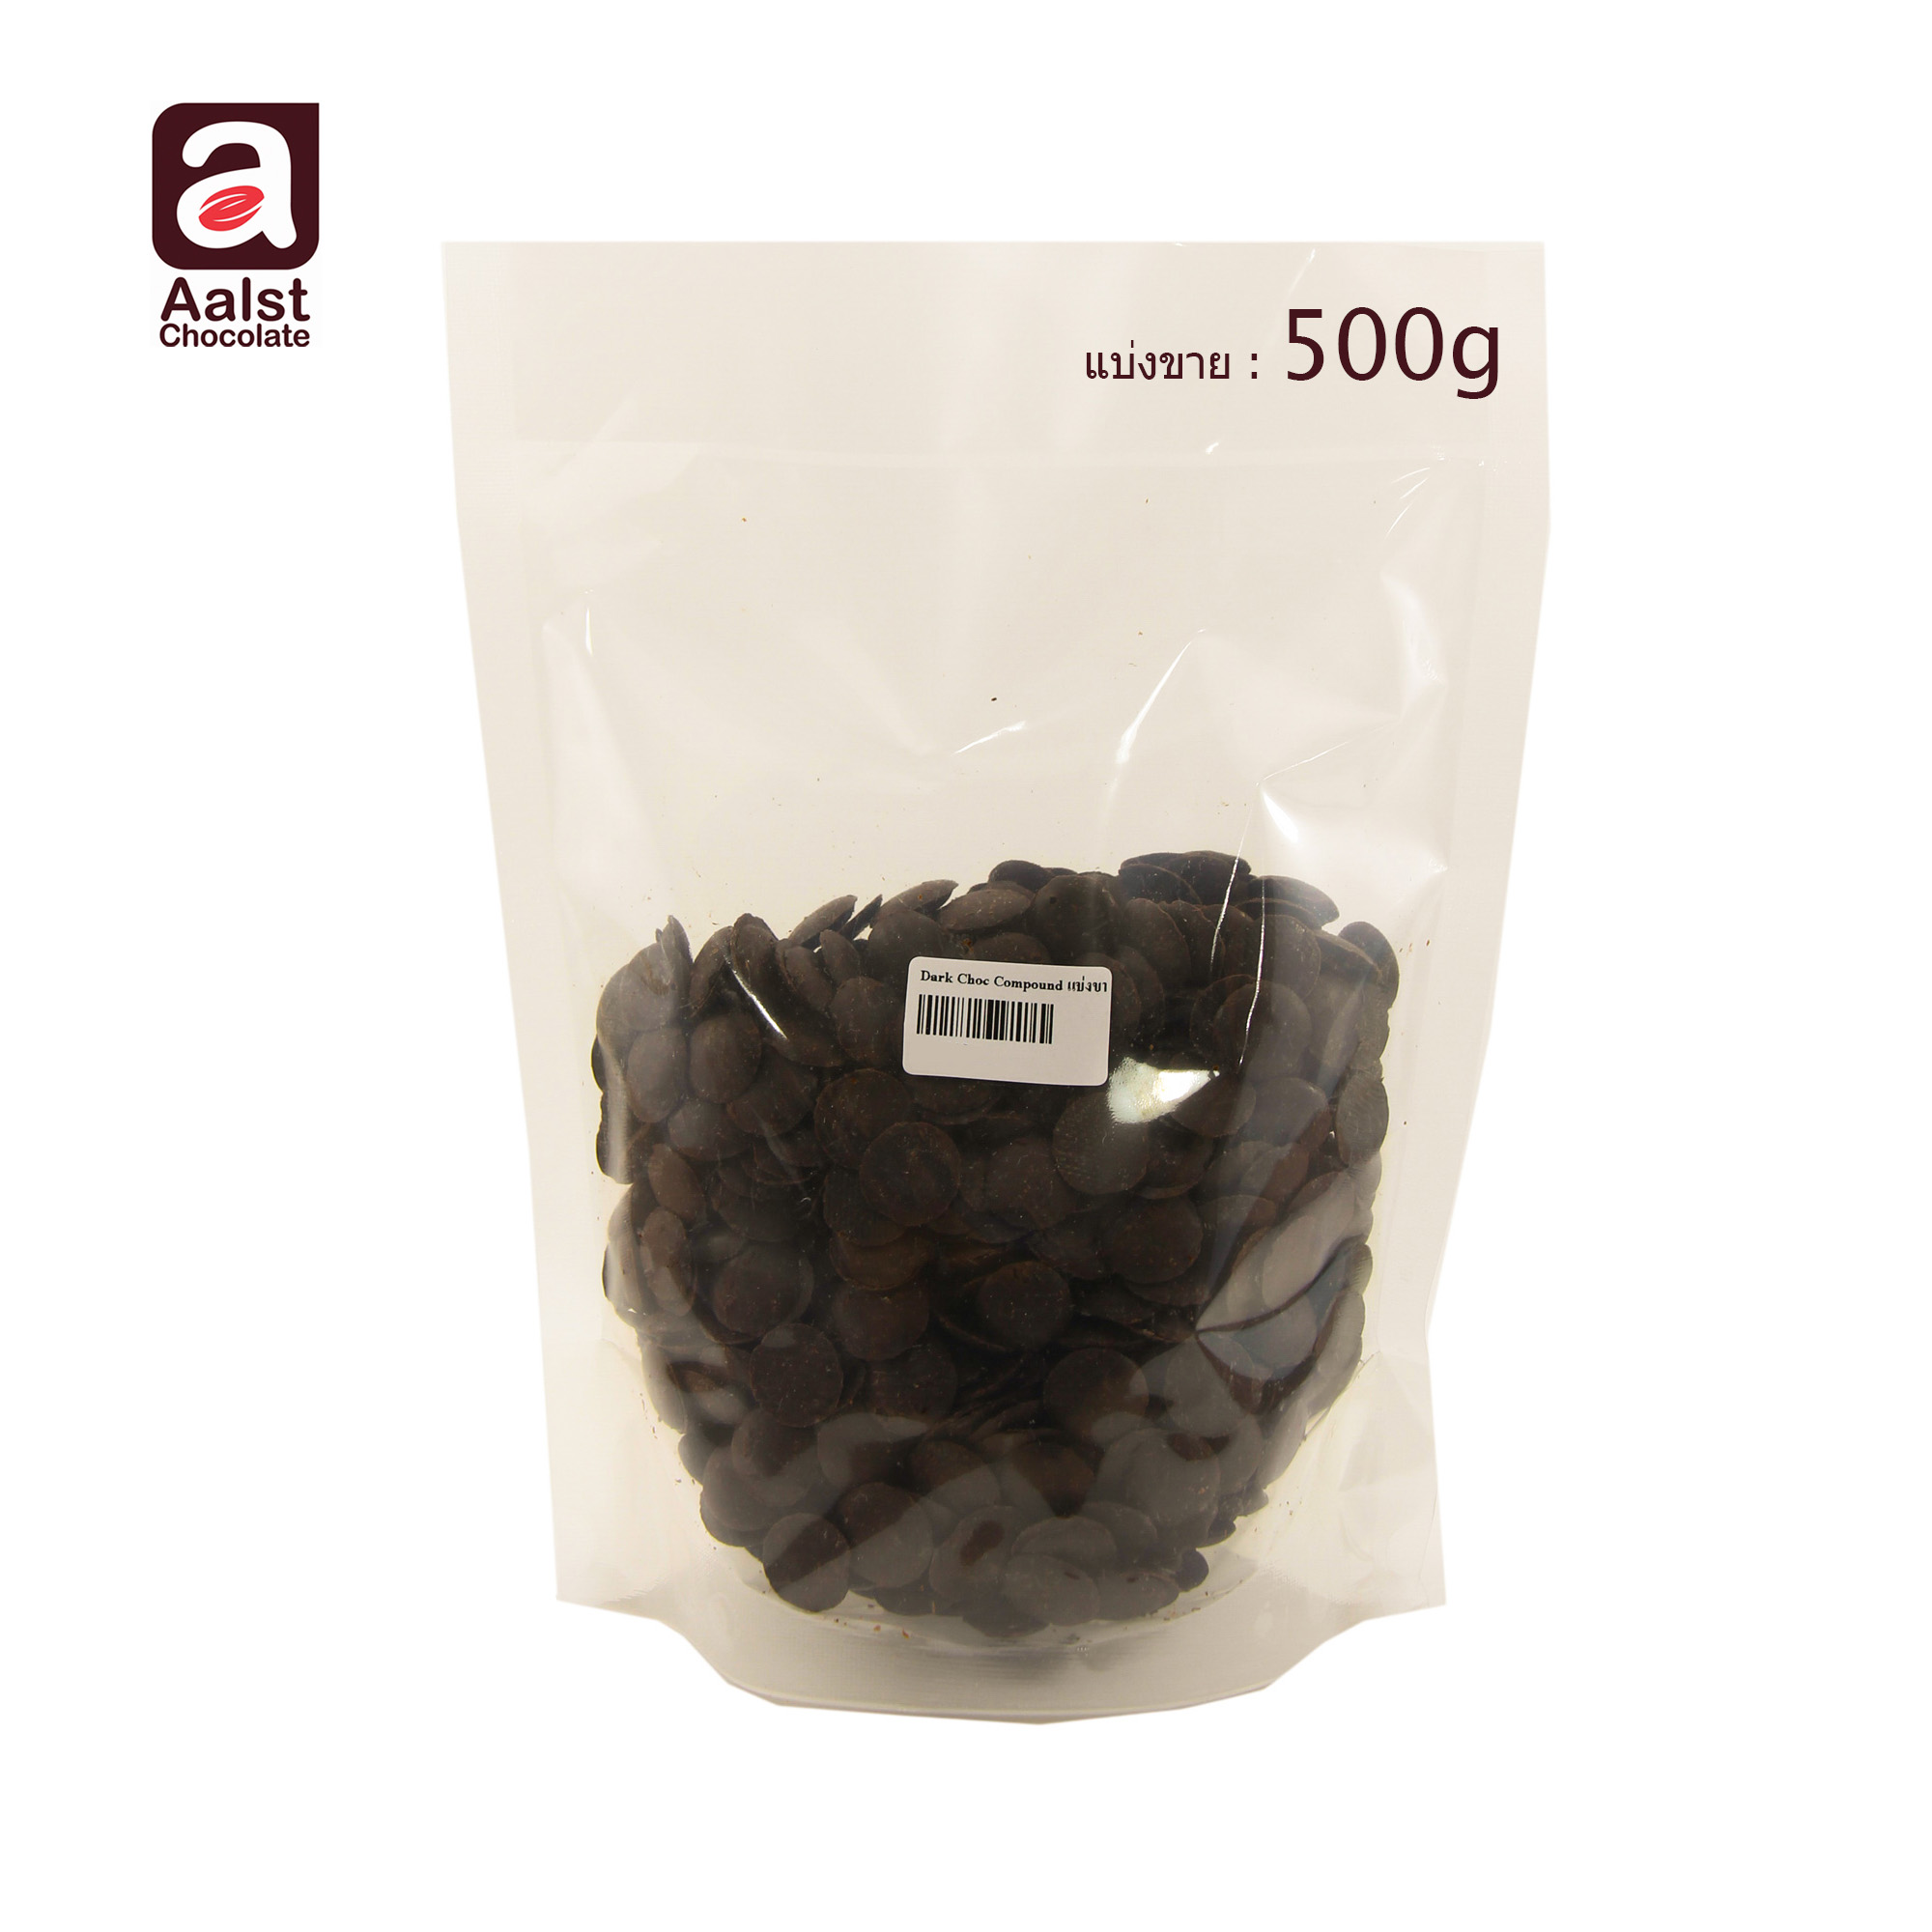 Aalst Dark Choc Compound แบ่งขาย 500 g